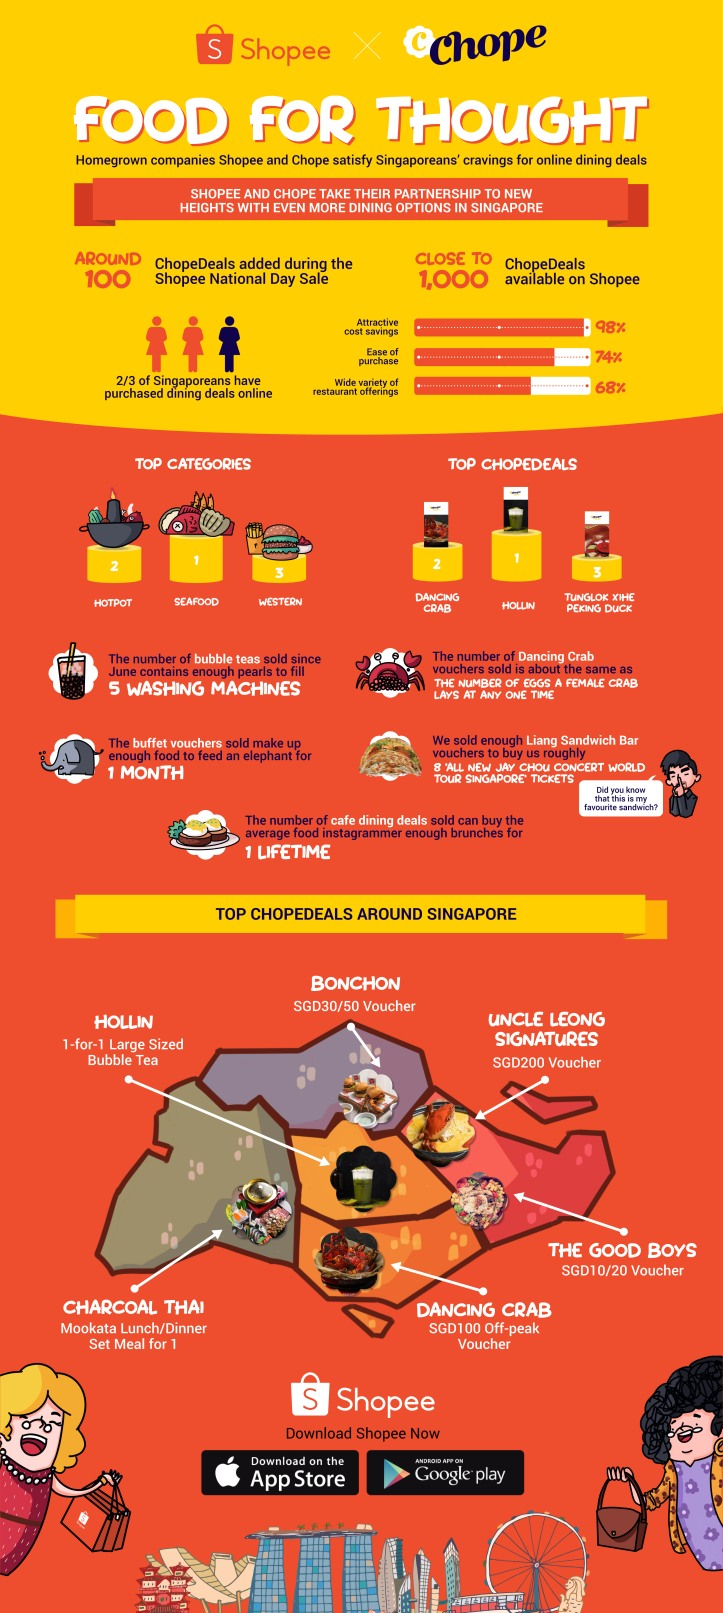 Shopee X Chope Infographic - Food For Thought.jpg